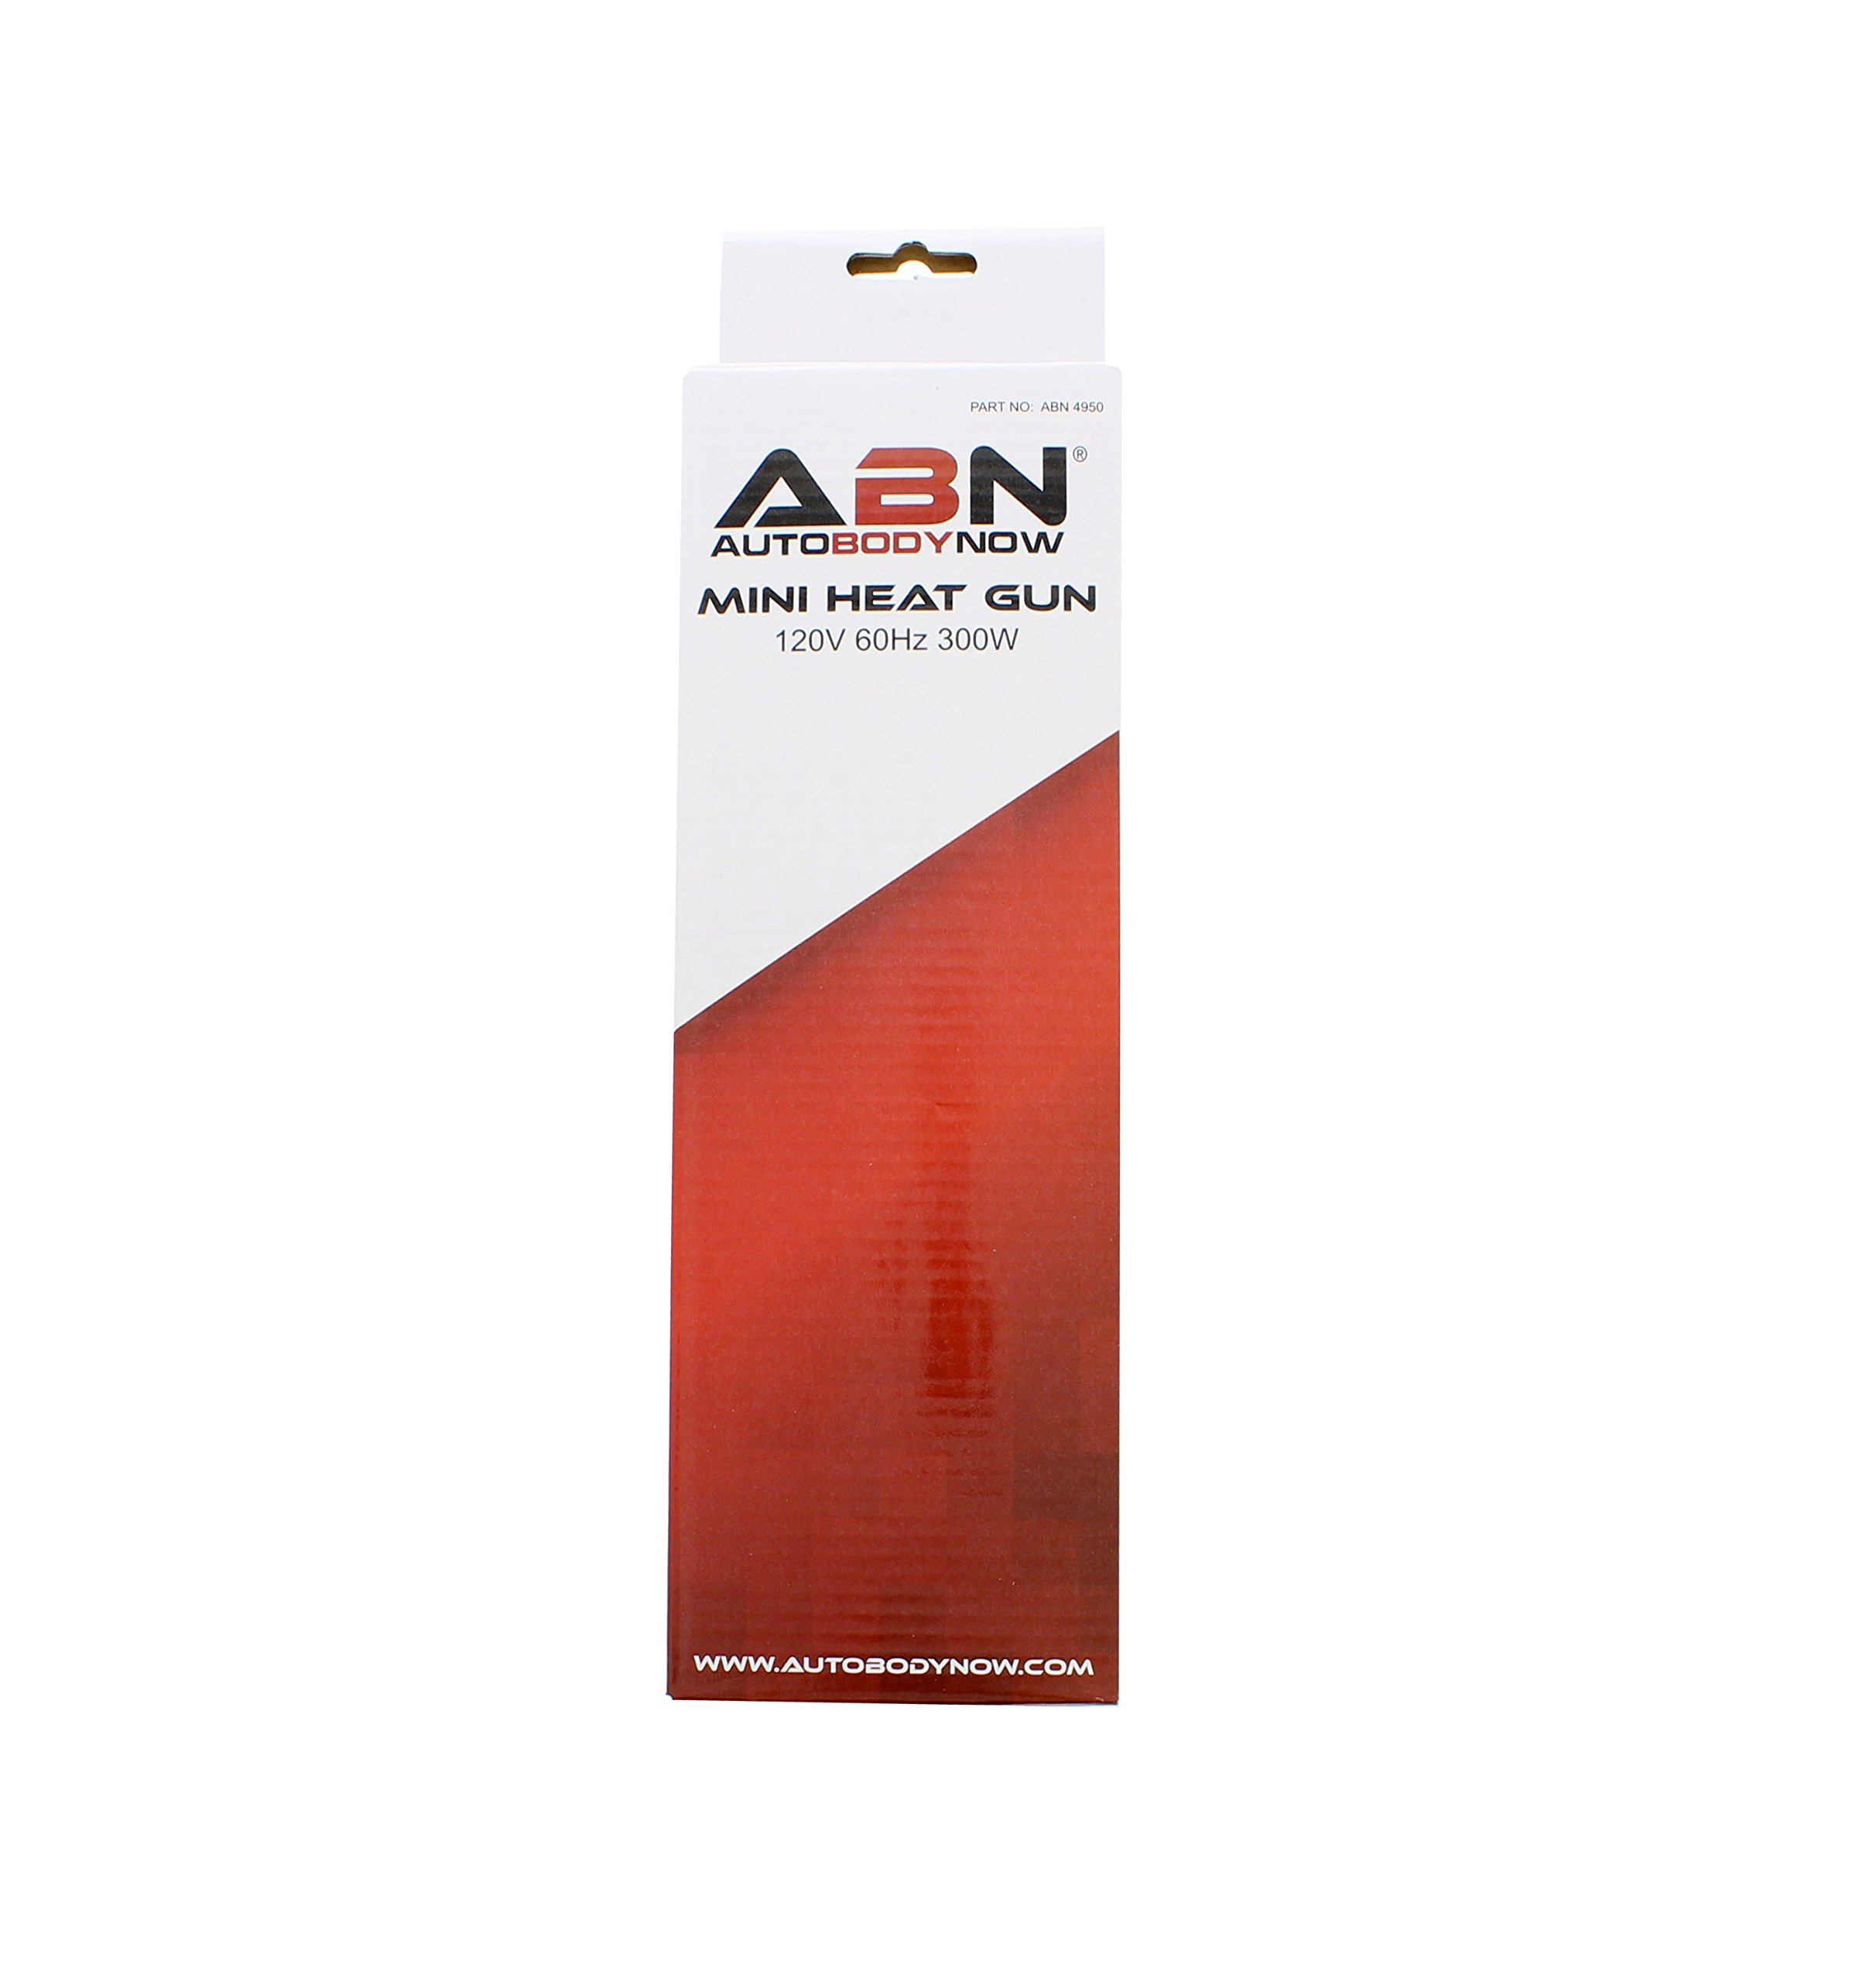 ABN Mini Heat Gun - Great for Heat Shrink Tubings and Drying - 120V, 60Hz, 300W by ABN (Image #6)